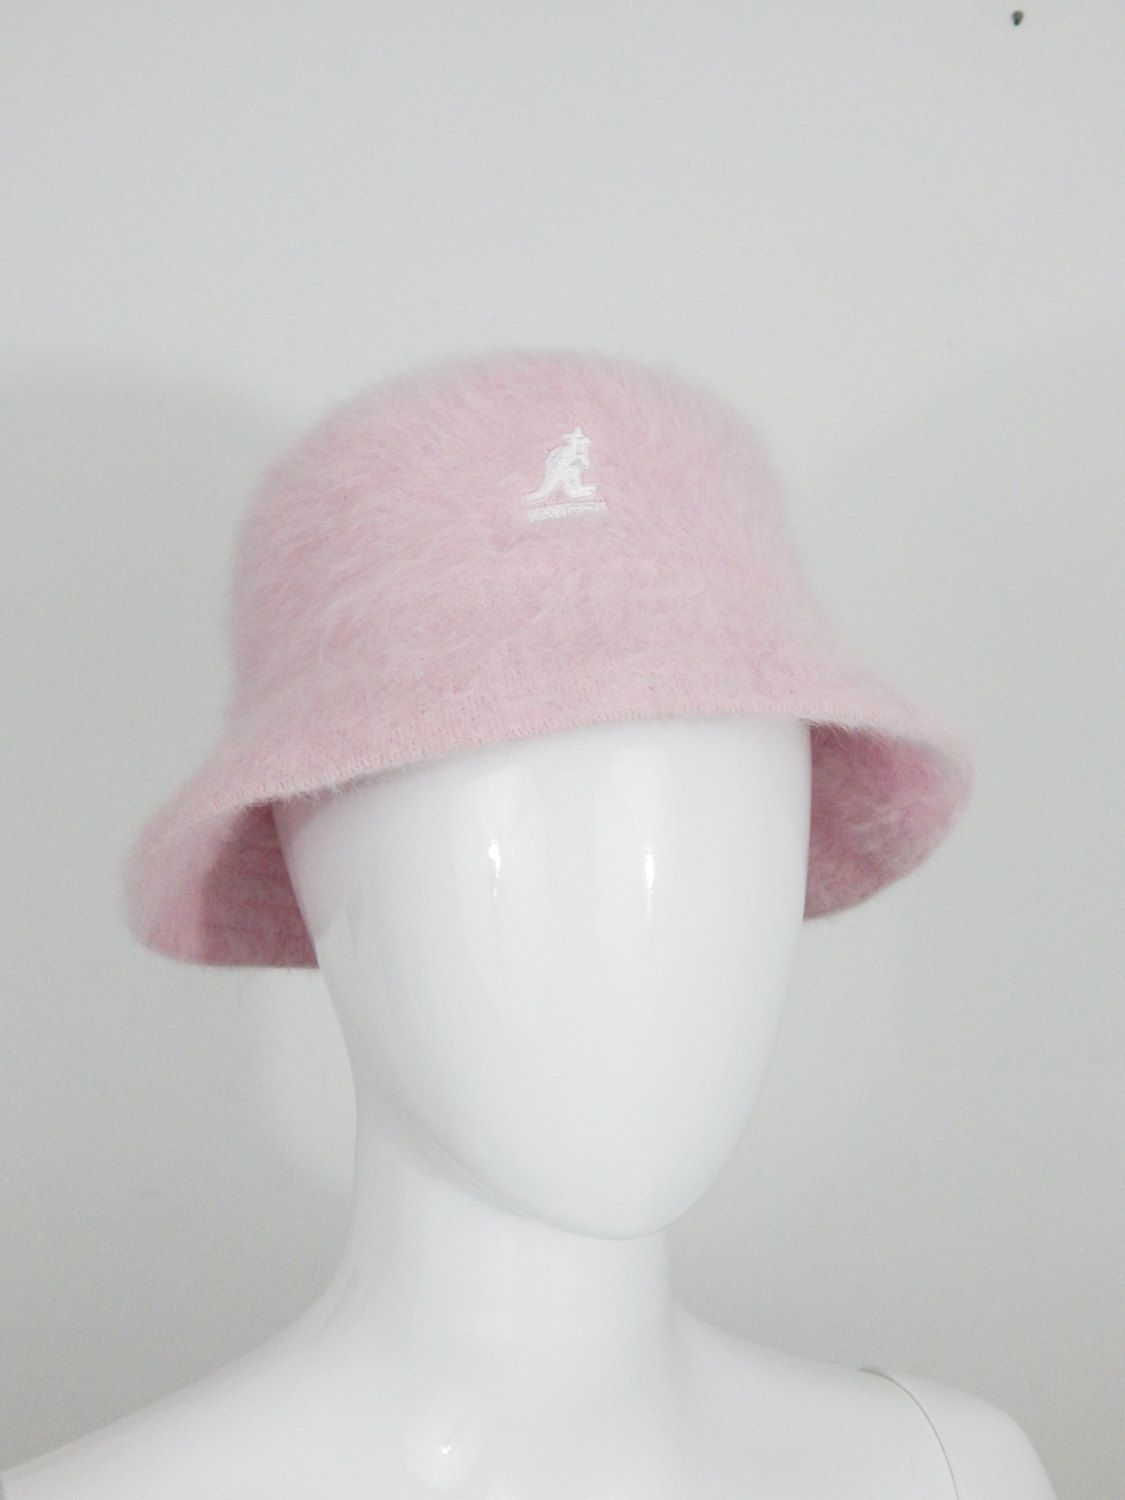 Pink furry KANGOL Furgora Lahinch90s vintage bucket hat size Medium bucket  hat men women unisex by GLITTERSTREET on Etsy 5c1ab25853c